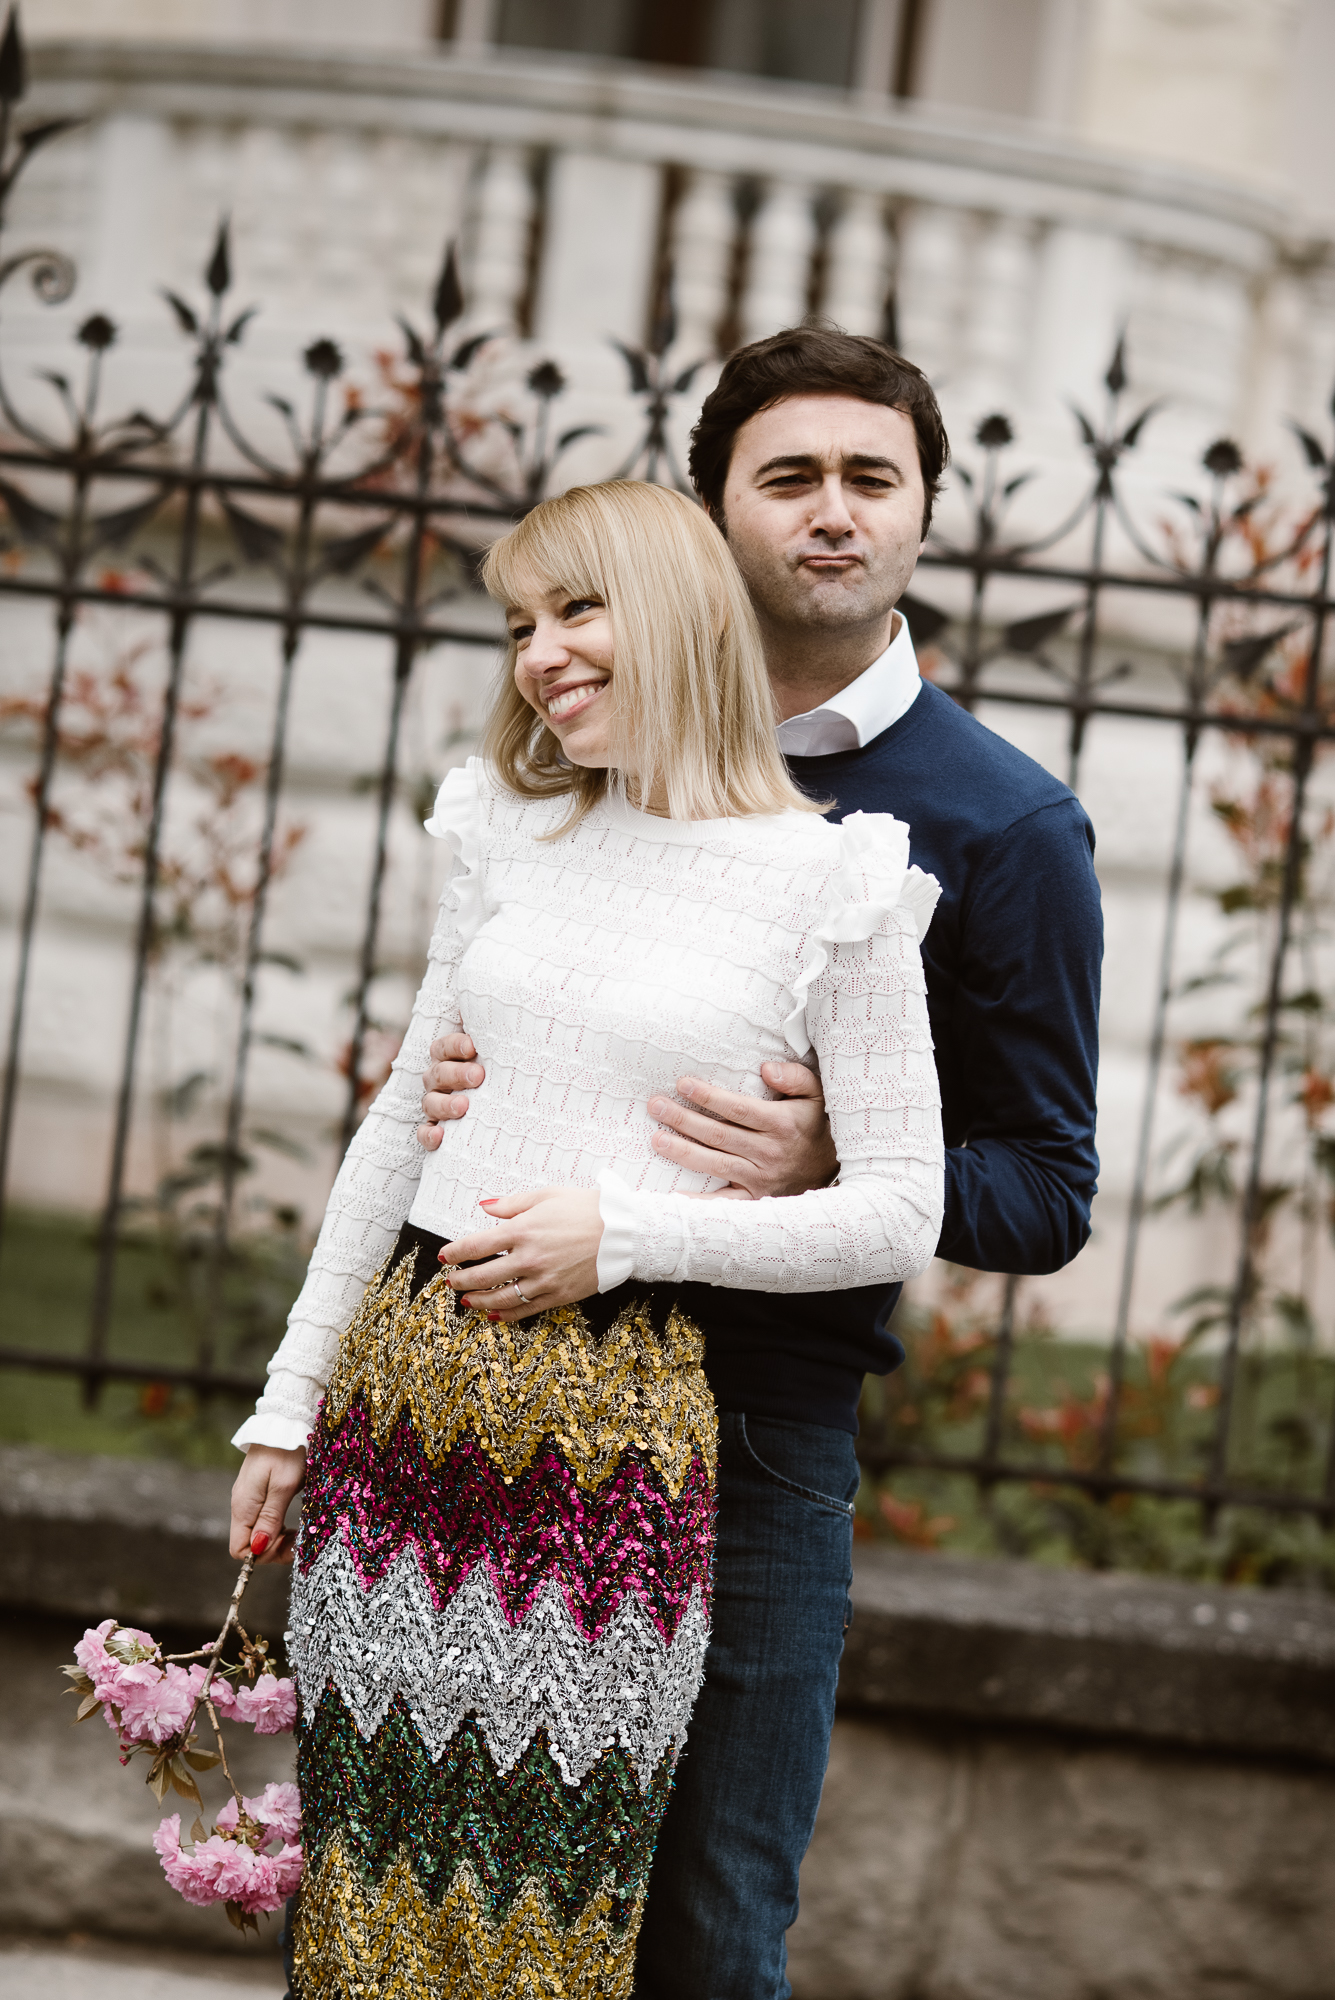 visit Budapest and have romantic photos by The Wedding Fox weddin photographer Budapest